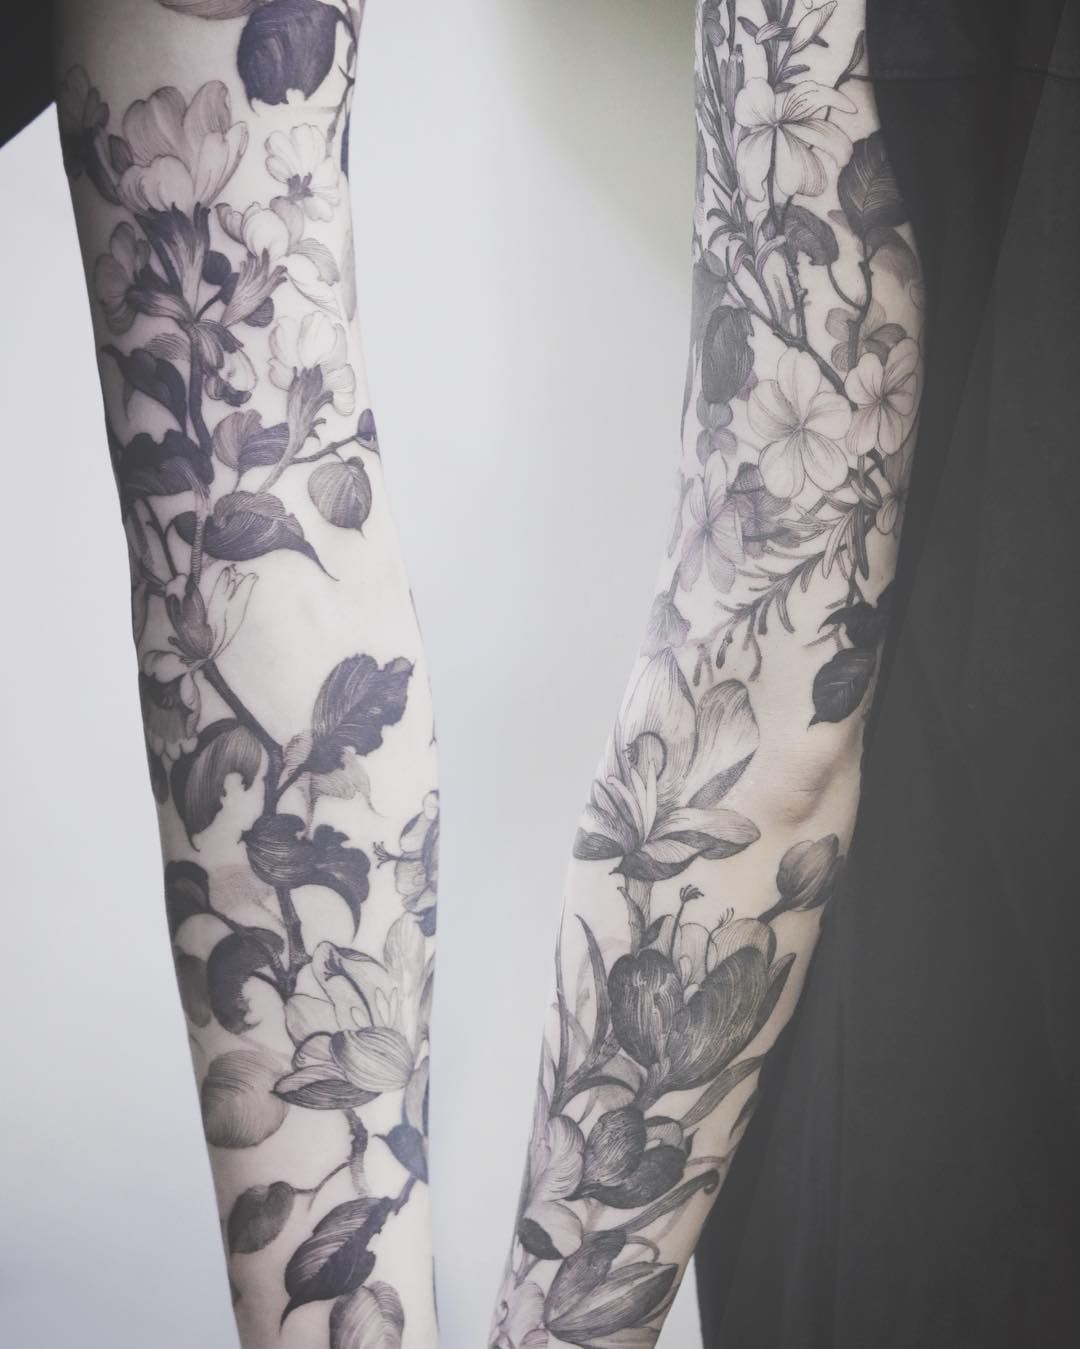 K U B R I C K H O On Instagram Flowers And Leaves Tattoo Justiceink Flowers Blackink Blackwork Tattoos Leaf Tattoos Sleeve Tattoos